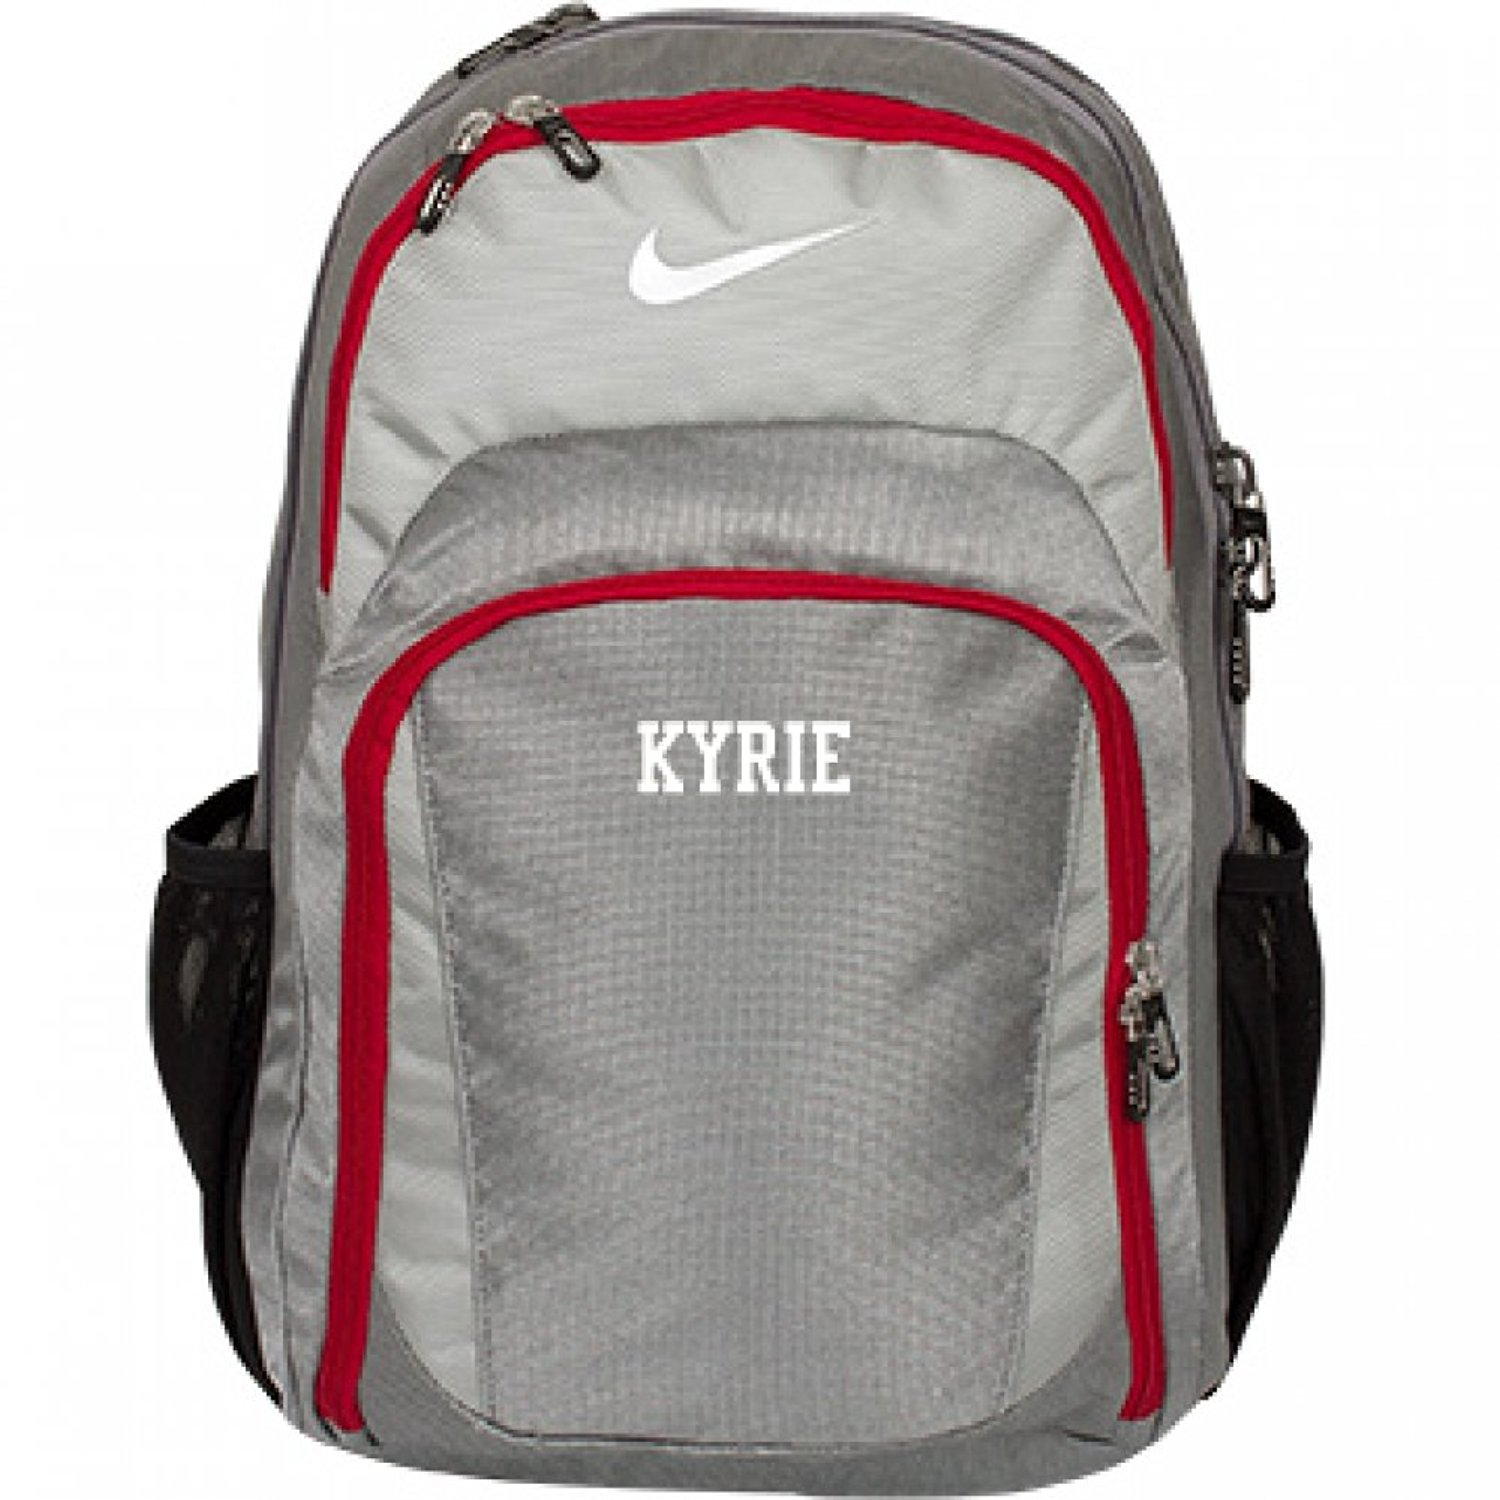 Buy Nike mens ALL STAR KYRIE BACKPACK BA5286-235 - KHAKI TEAM ORANGE ... 34b3343b79791